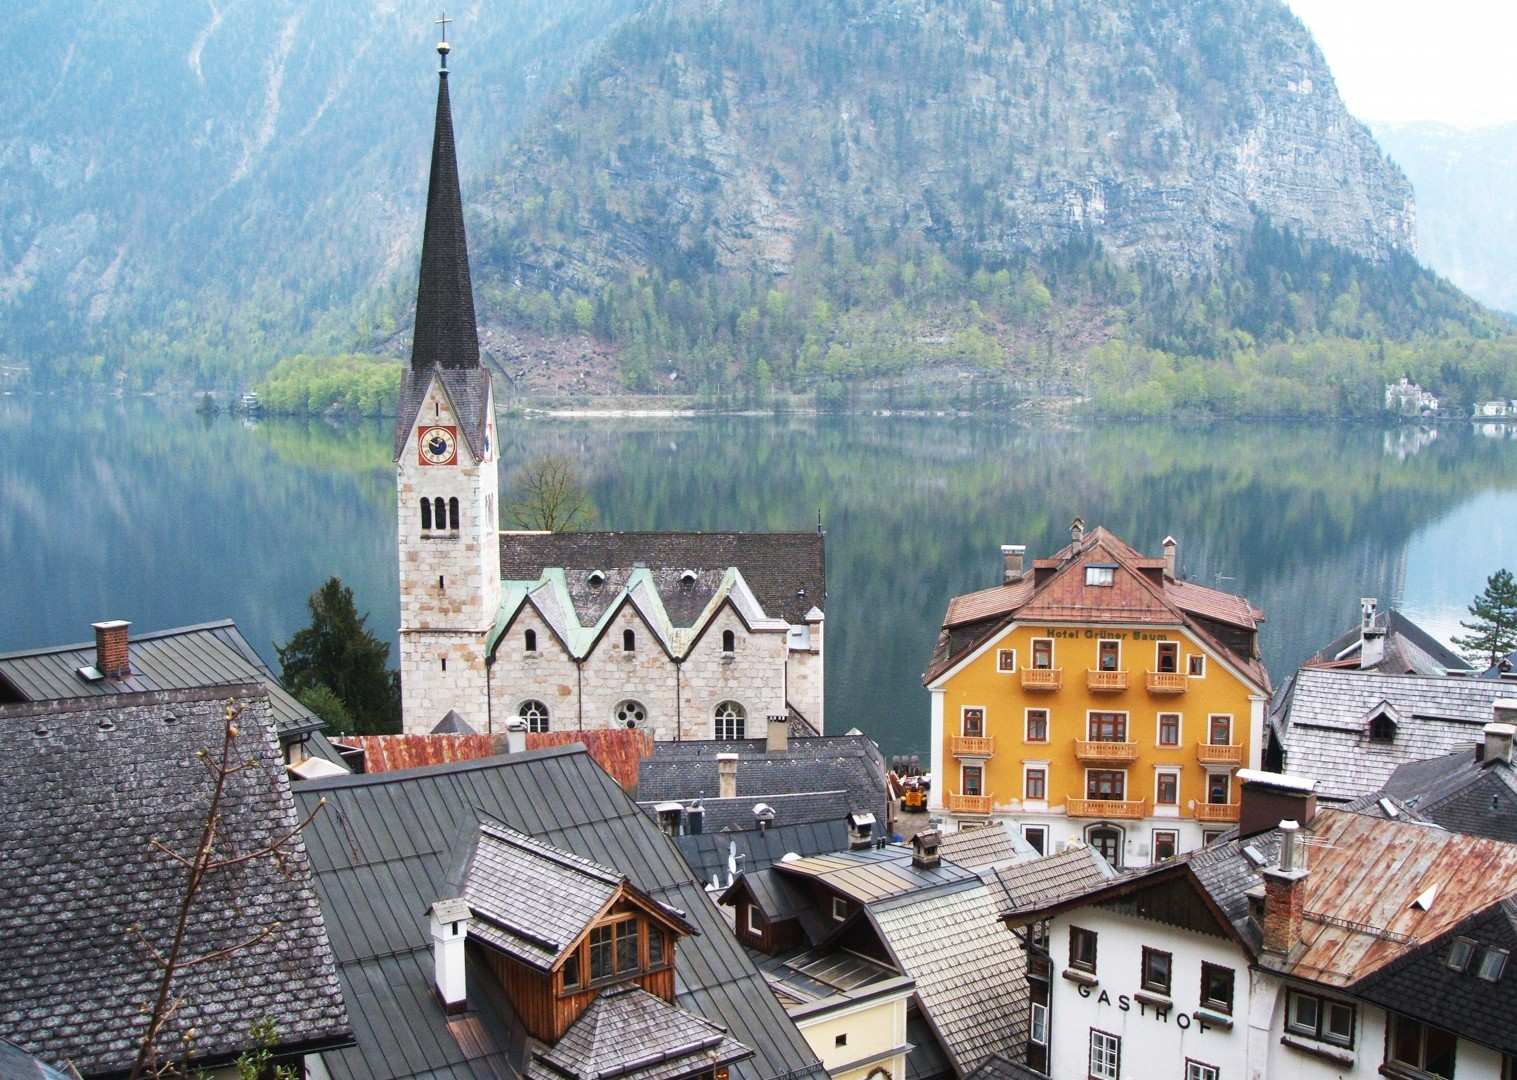 self-guided-family-cycling-holiday-austria-lake-hallstatt.jpg - Austria - Ten Lakes Tour - Self-Guided Family Cycling Holiday - Family Cycling